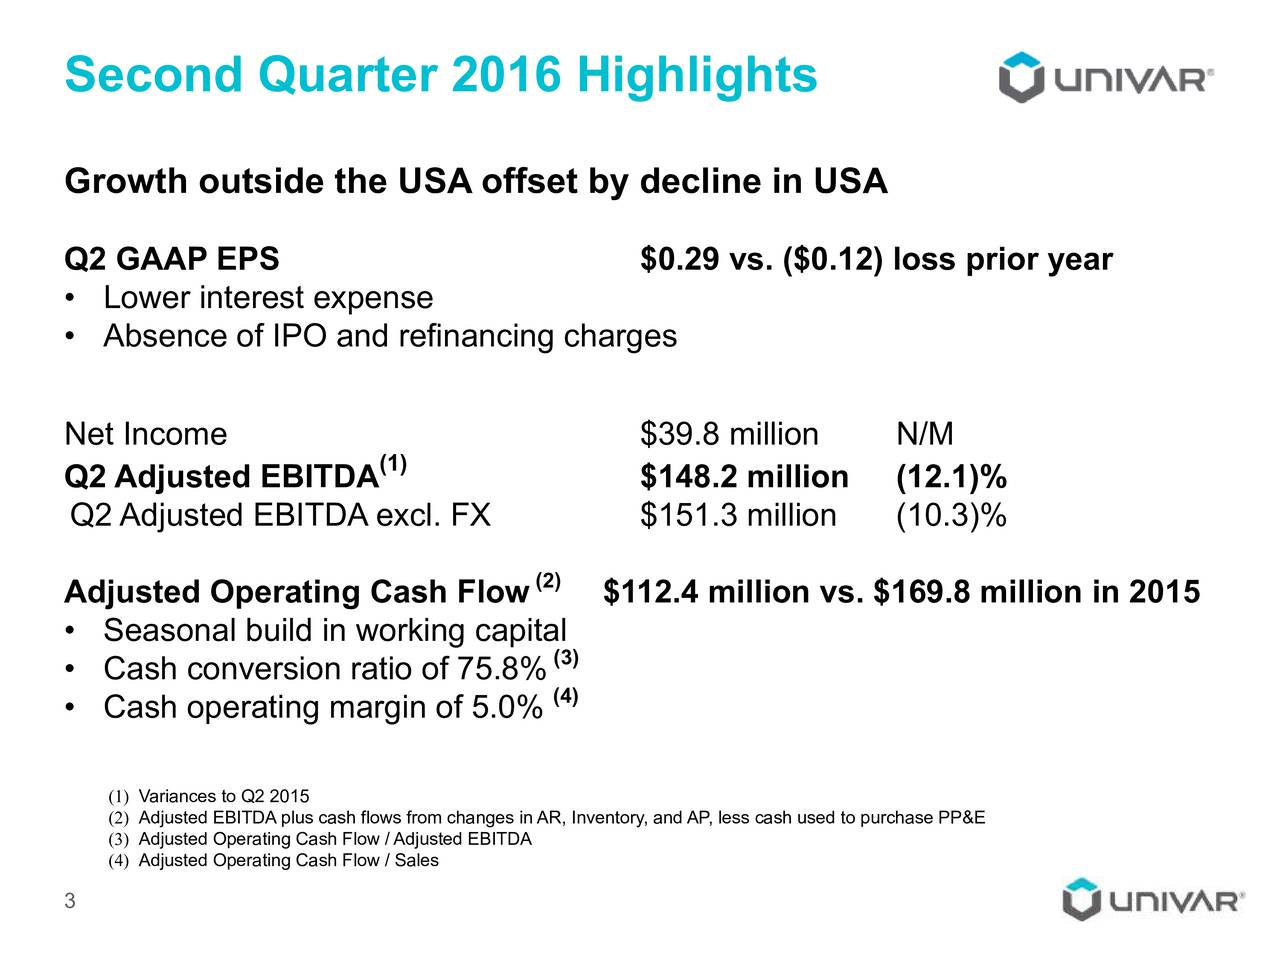 Growth outside the USA offset by decline in USA Q2 GAAP EPS $0.29 vs. ($0.12) loss prior year Lower interest expense Absence of IPO and refinancing charges Net Income $39.8 million N/M (1) Q2 Adjusted EBITDA $148.2 million (12.1)% Q2 Adjusted EBITDA excl. FX $151.3 million (10.3)% (2) Adjusted Operating Cash Flow $112.4 million vs. $169.8 million in 2015 Seasonal build in working capital Cash conversion ratio of 75.8% (3) (4) Cash operating margin of 5.0% (2) Adjusted EBITDA plus cash flows from changes in AR, Inventory, and AP, less cash used to purchase PP&E (3) Adjusted Operating Cash Flow / Adjusted EBITDA (4) Adjusted Operating Cash Flow / Sales 3